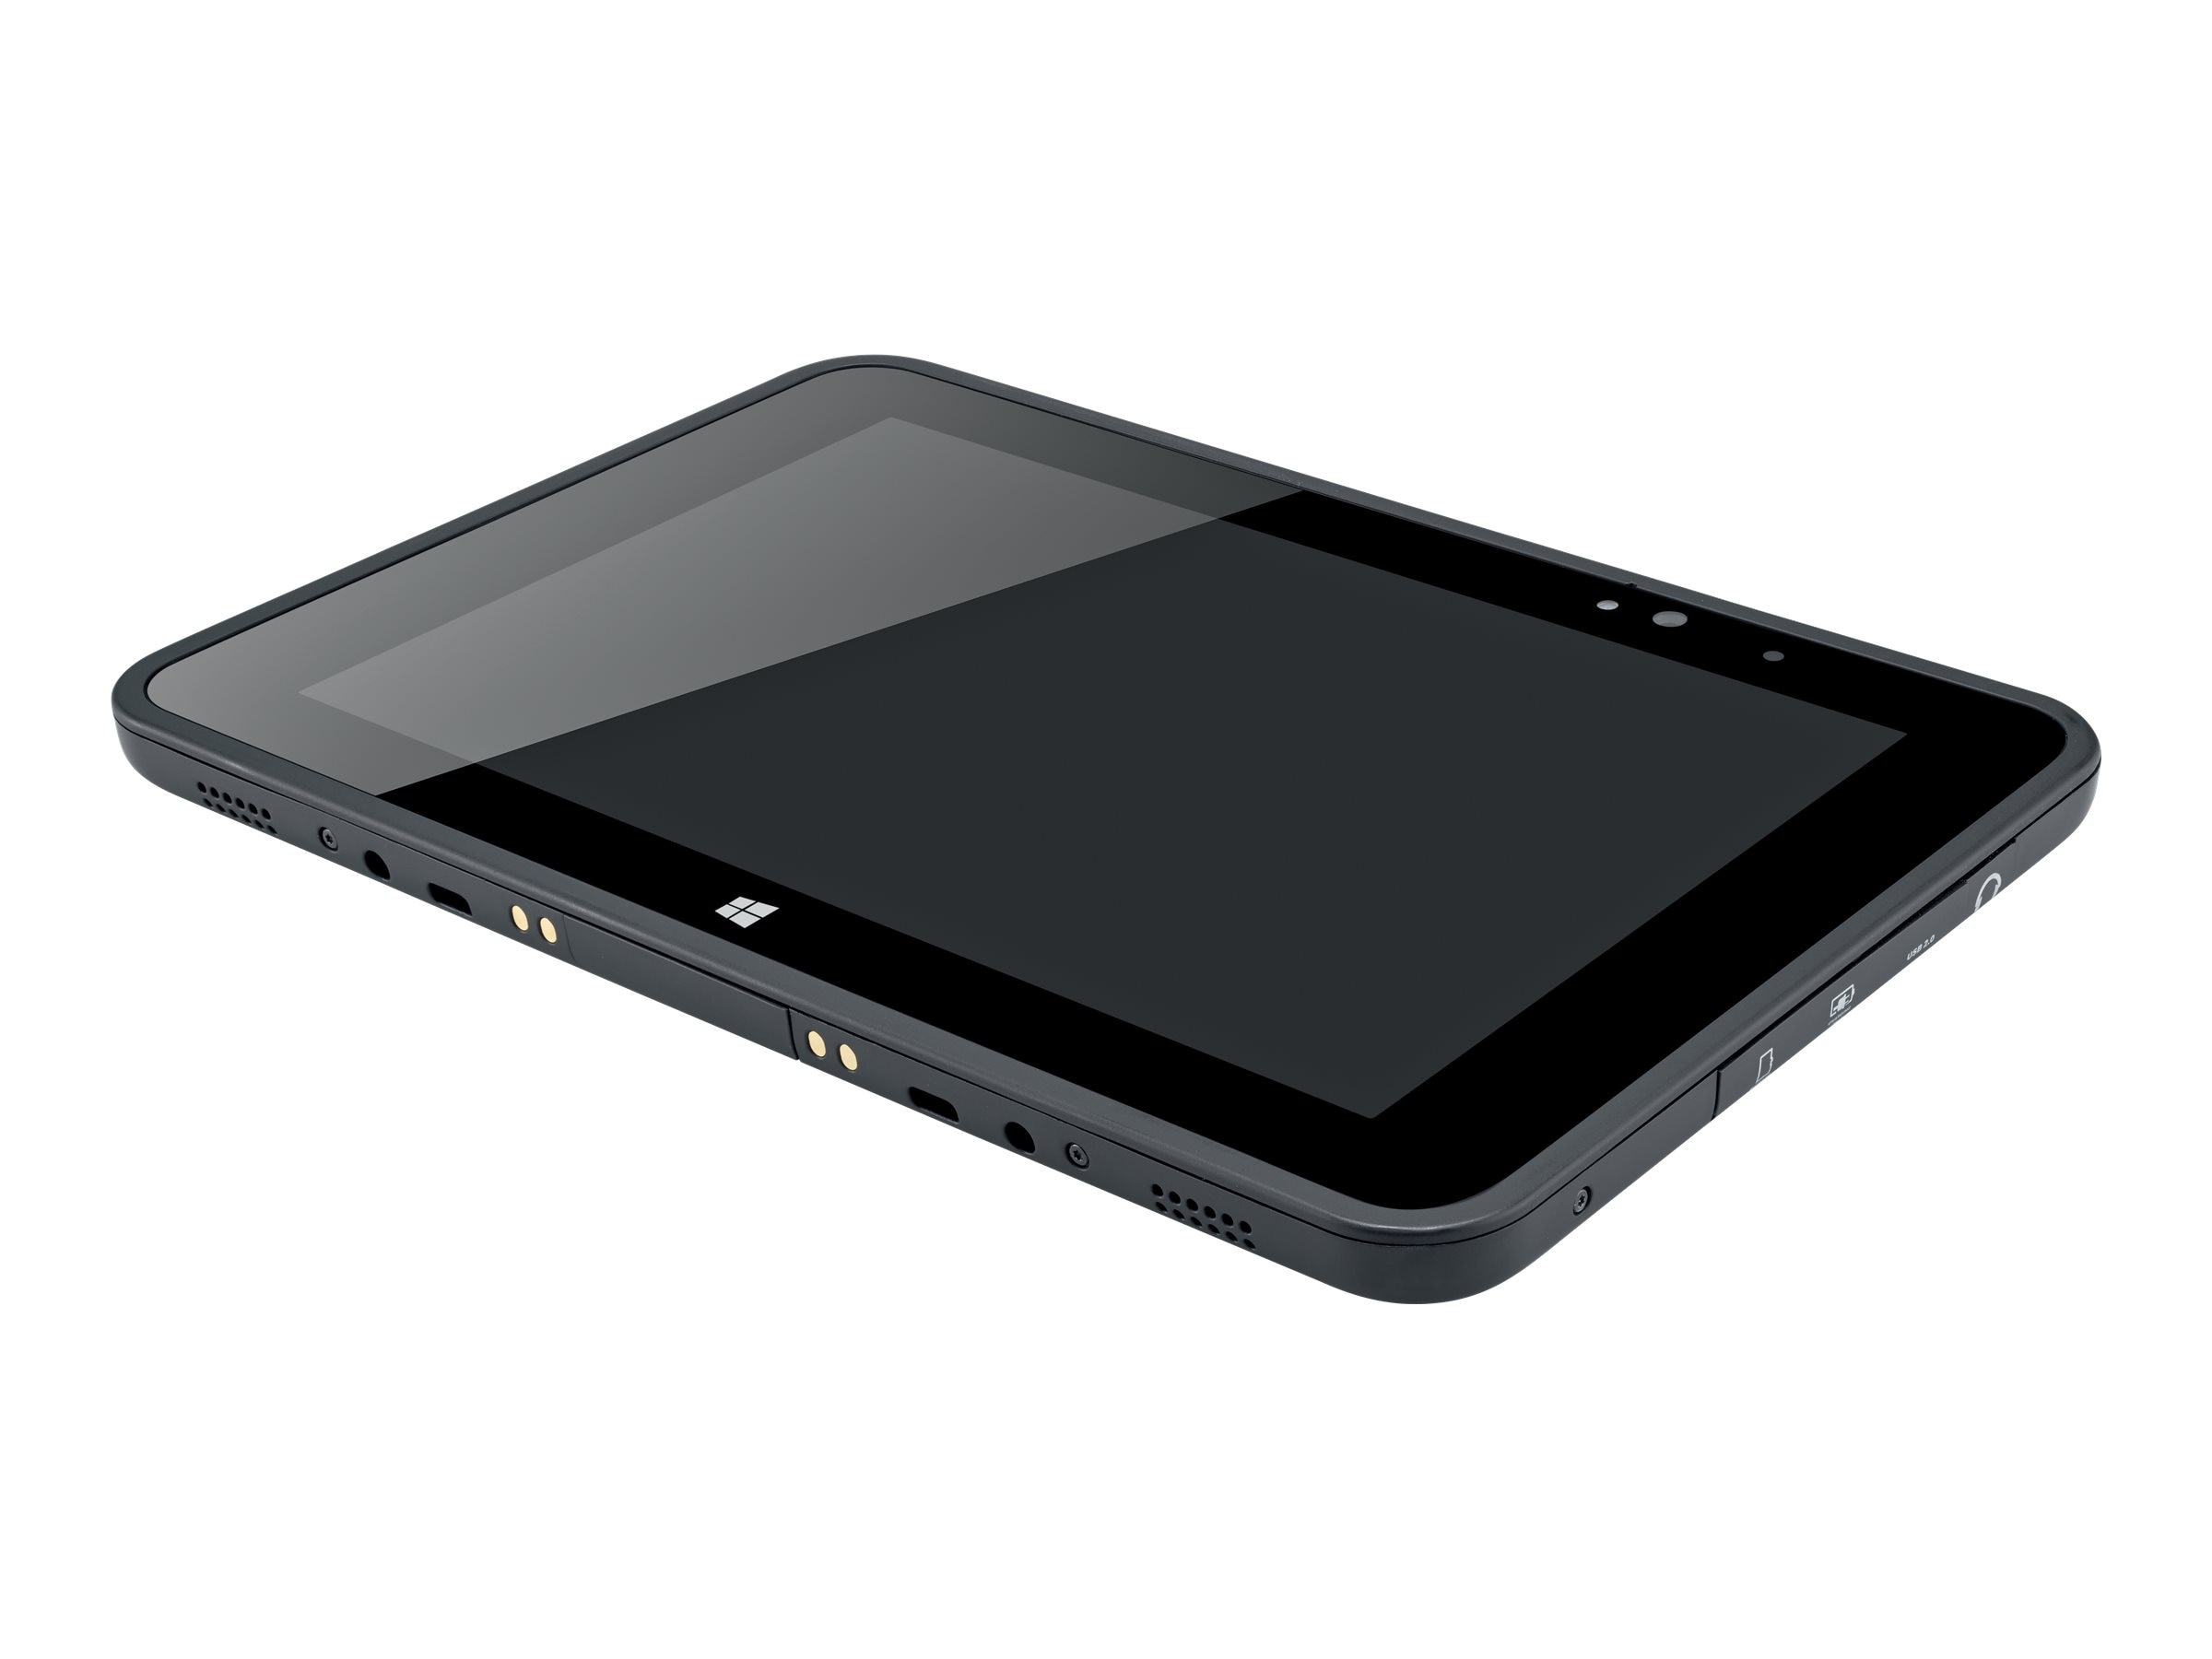 Fujitsu Stylistic V535 Atom Z3745 1.33GHz 4GB 64GB SSD abgn BT 2xWC 2C 8.3 WUXGA MT WE8.1IP, V535-W8E32-001, 30183725, Tablets